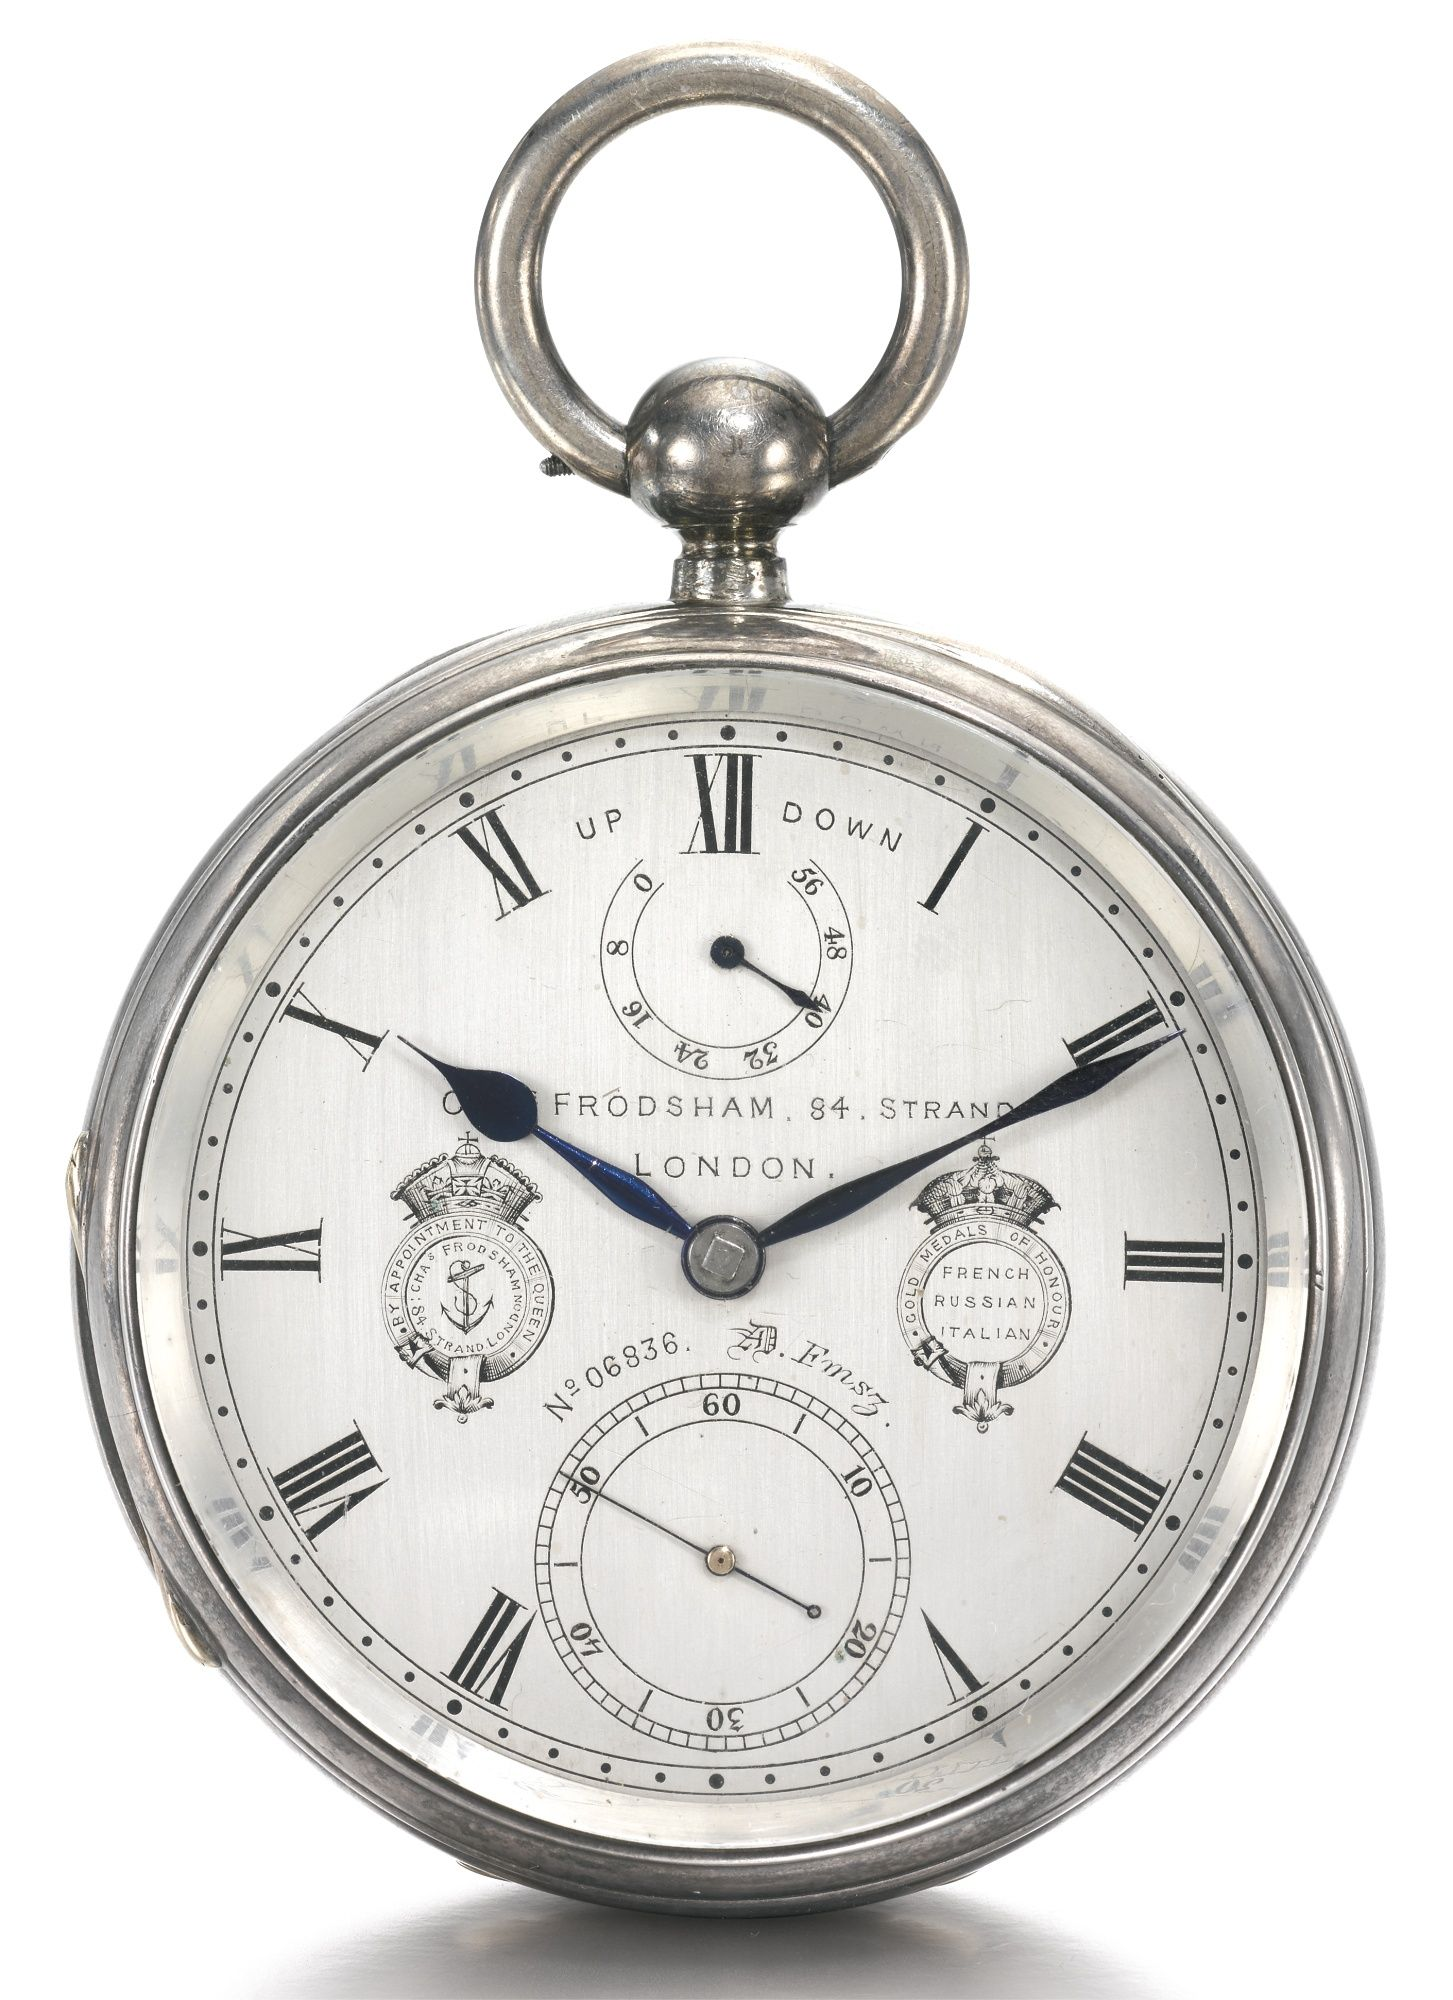 Charles Frodsham, London AN EXCEPTIONAL AND LARGE SILVER OPENFACE TWO DAY CHRONOMETER DECK WATCH WITH UP AND DOWN INDICATOR AND DUO-IN-UNO HAIRSPRING 1884, NO. 06836 AD FMSZ